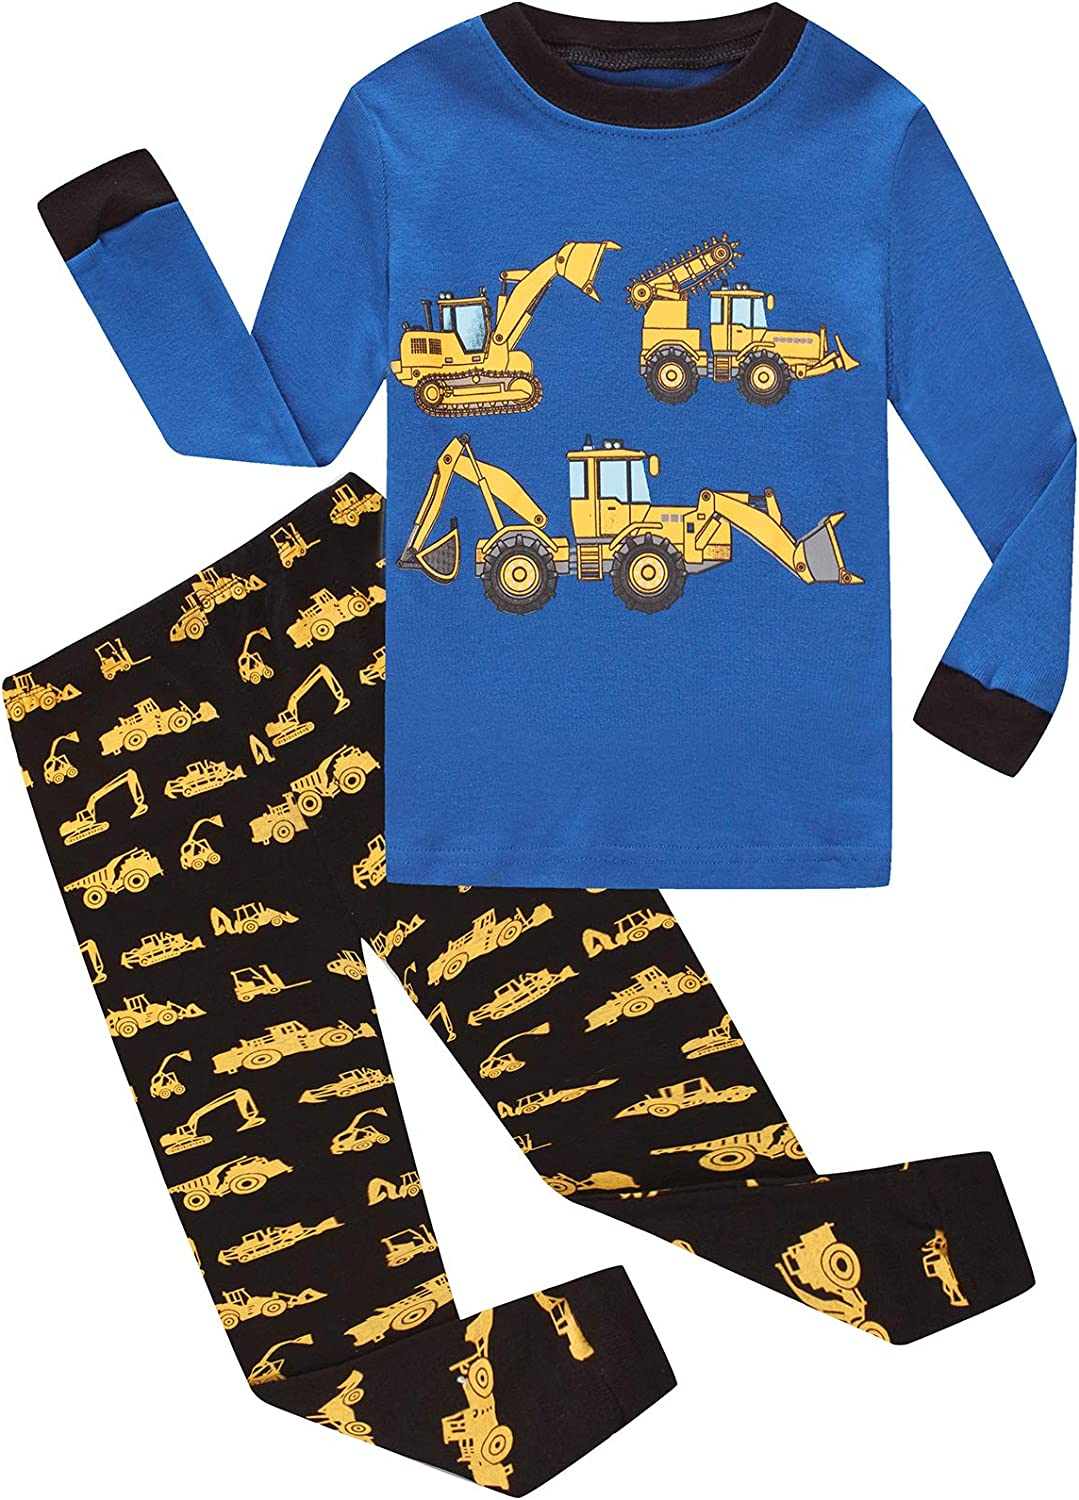 DolphinFish Boys Pajamas 4Piece Max 74% OFF Toddler Kids Cotton Pjs Inexpensive To Sets